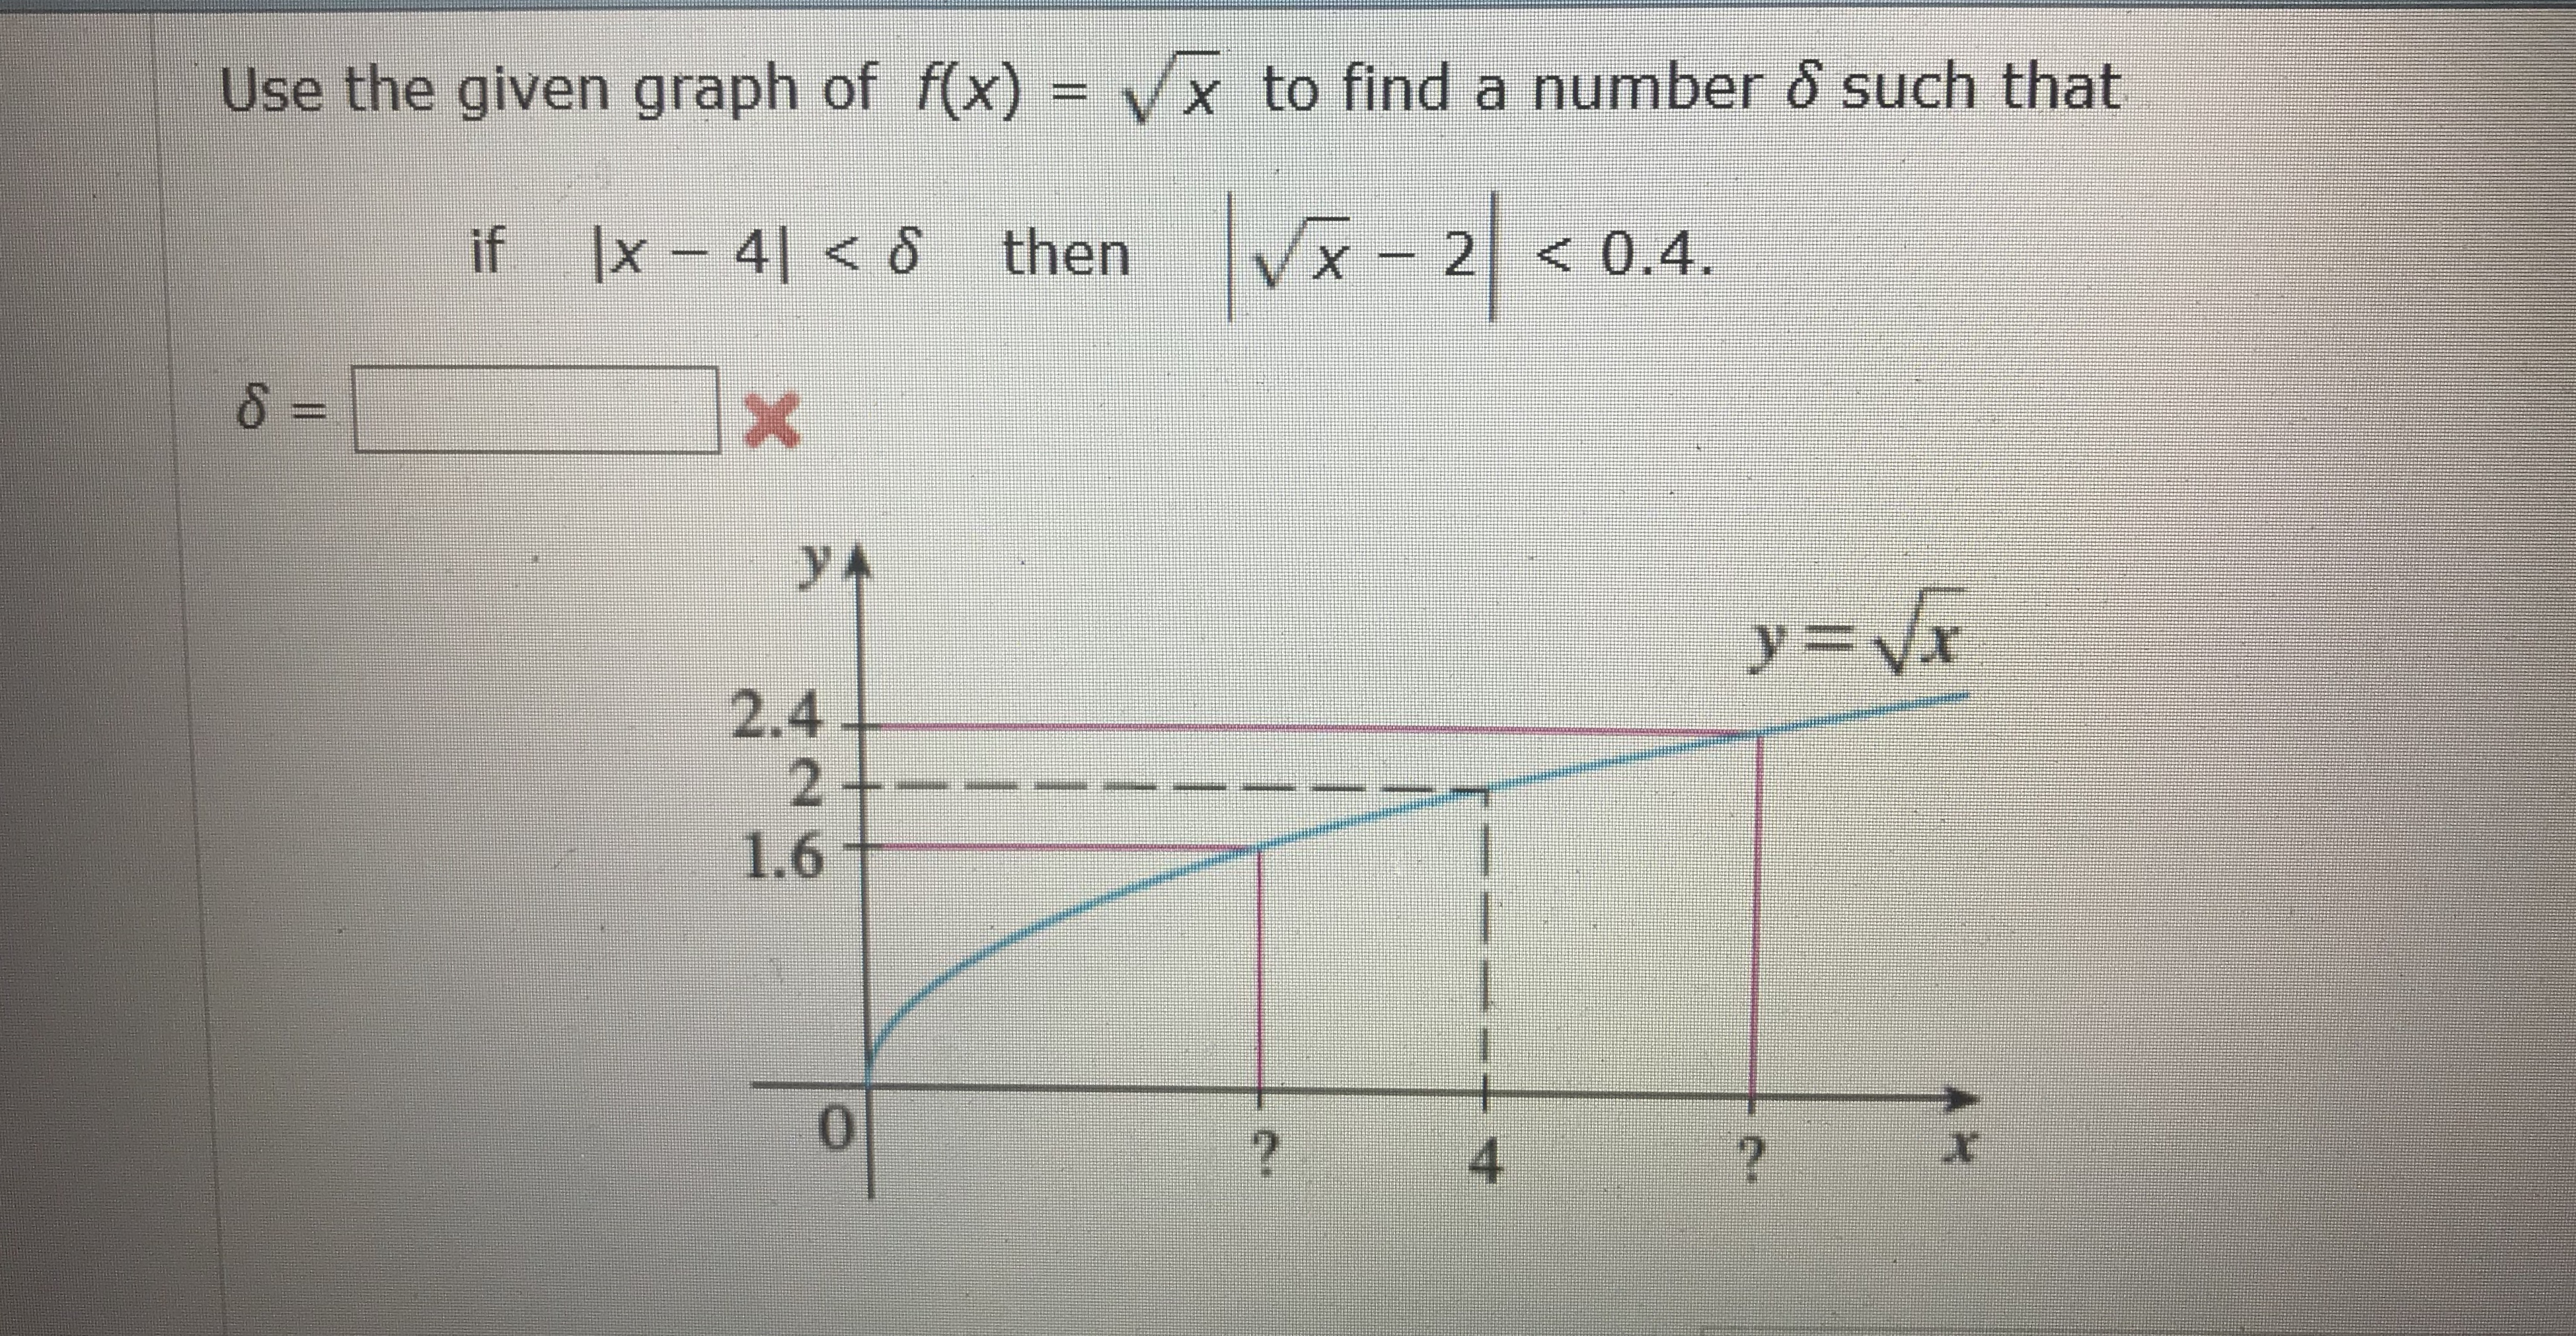 Use the given graph of f(x) to find a number δ such that if Ix-41< δ then |VE-2|< 0.4. 2.4 2 1.6 0 4